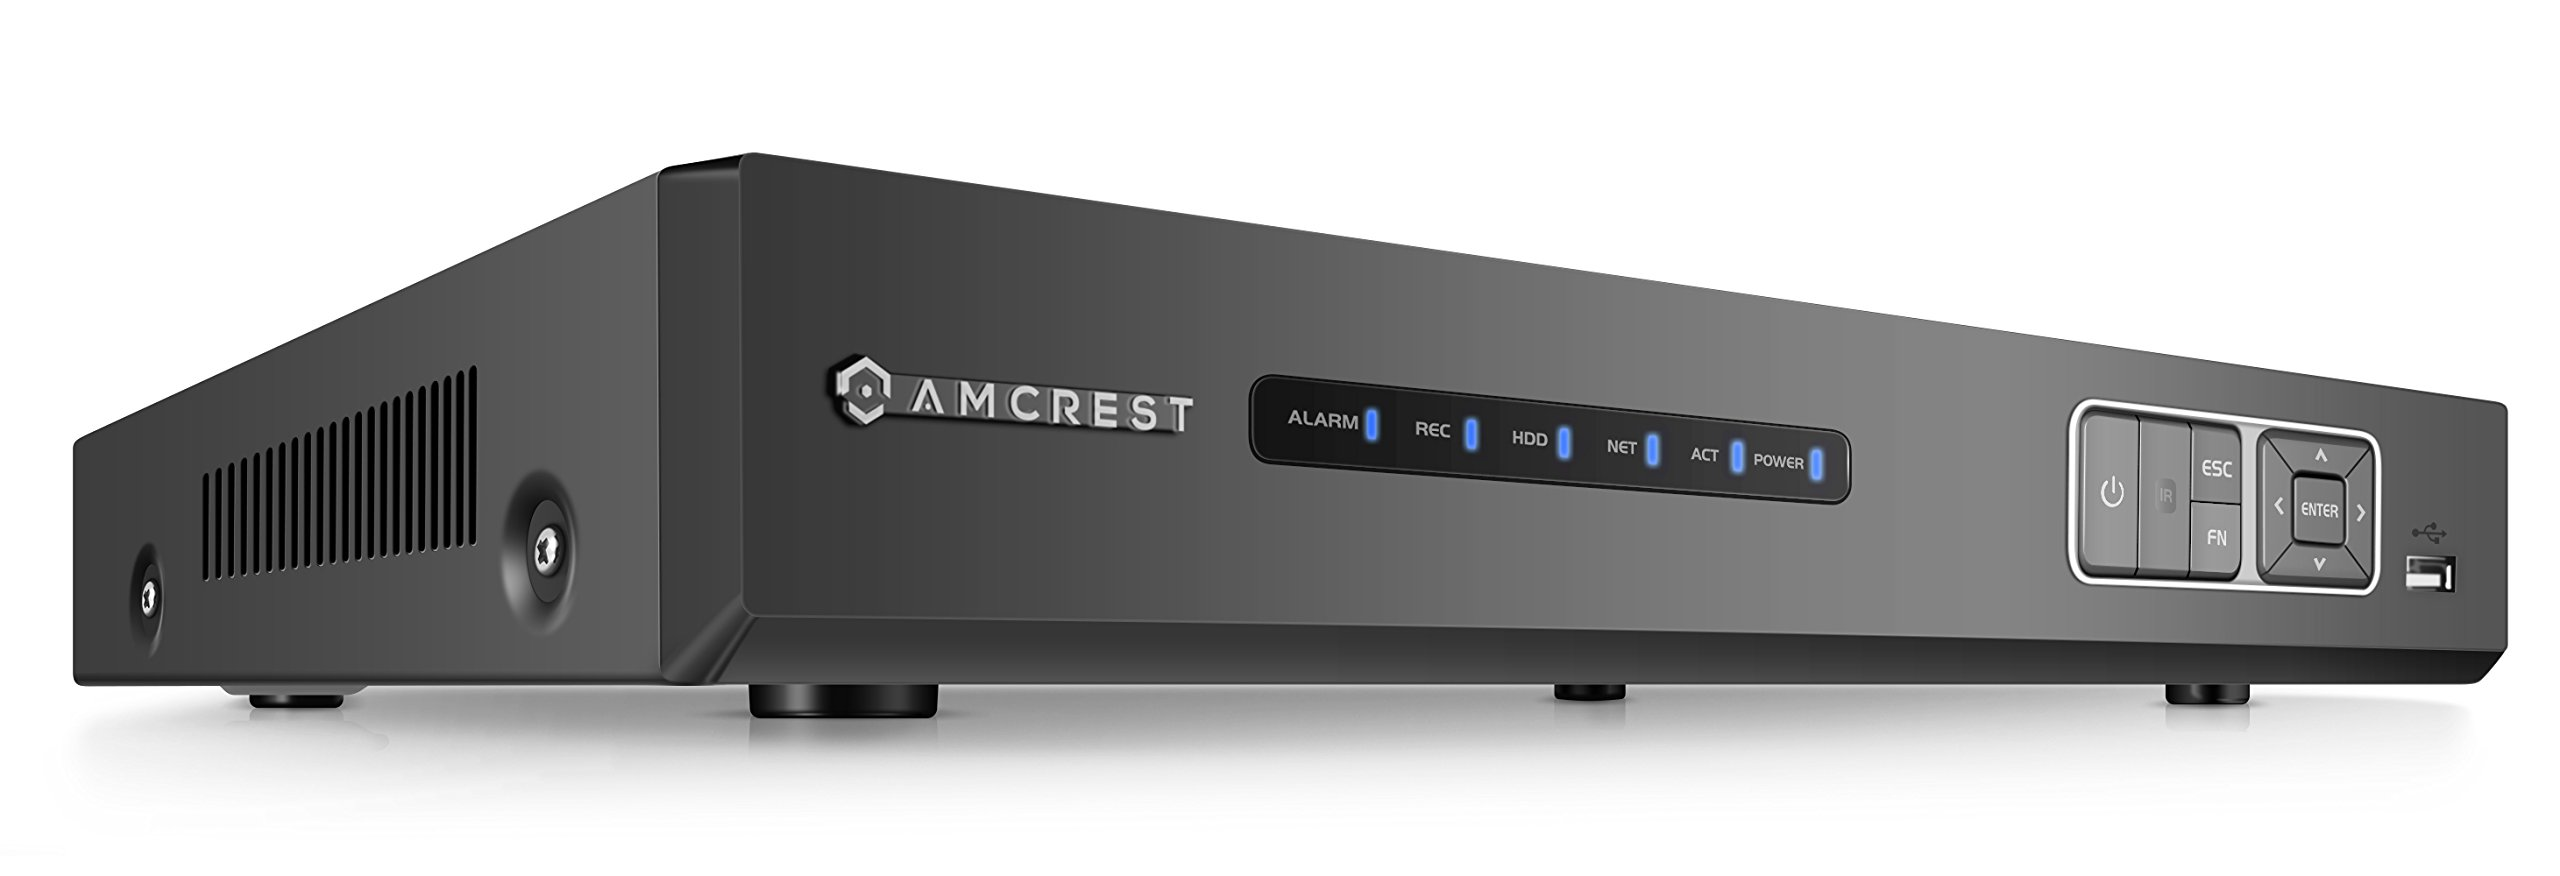 Amcrest 4MP HD-Analog 4CH Video Security DVR Digital Recorder, UltraHD 4-Channel 4 Megapixel, HD Analog, Hard Drive & Cameras NOT Included, Remote Smartphone Access, Security Camera System (AMDV4M4)